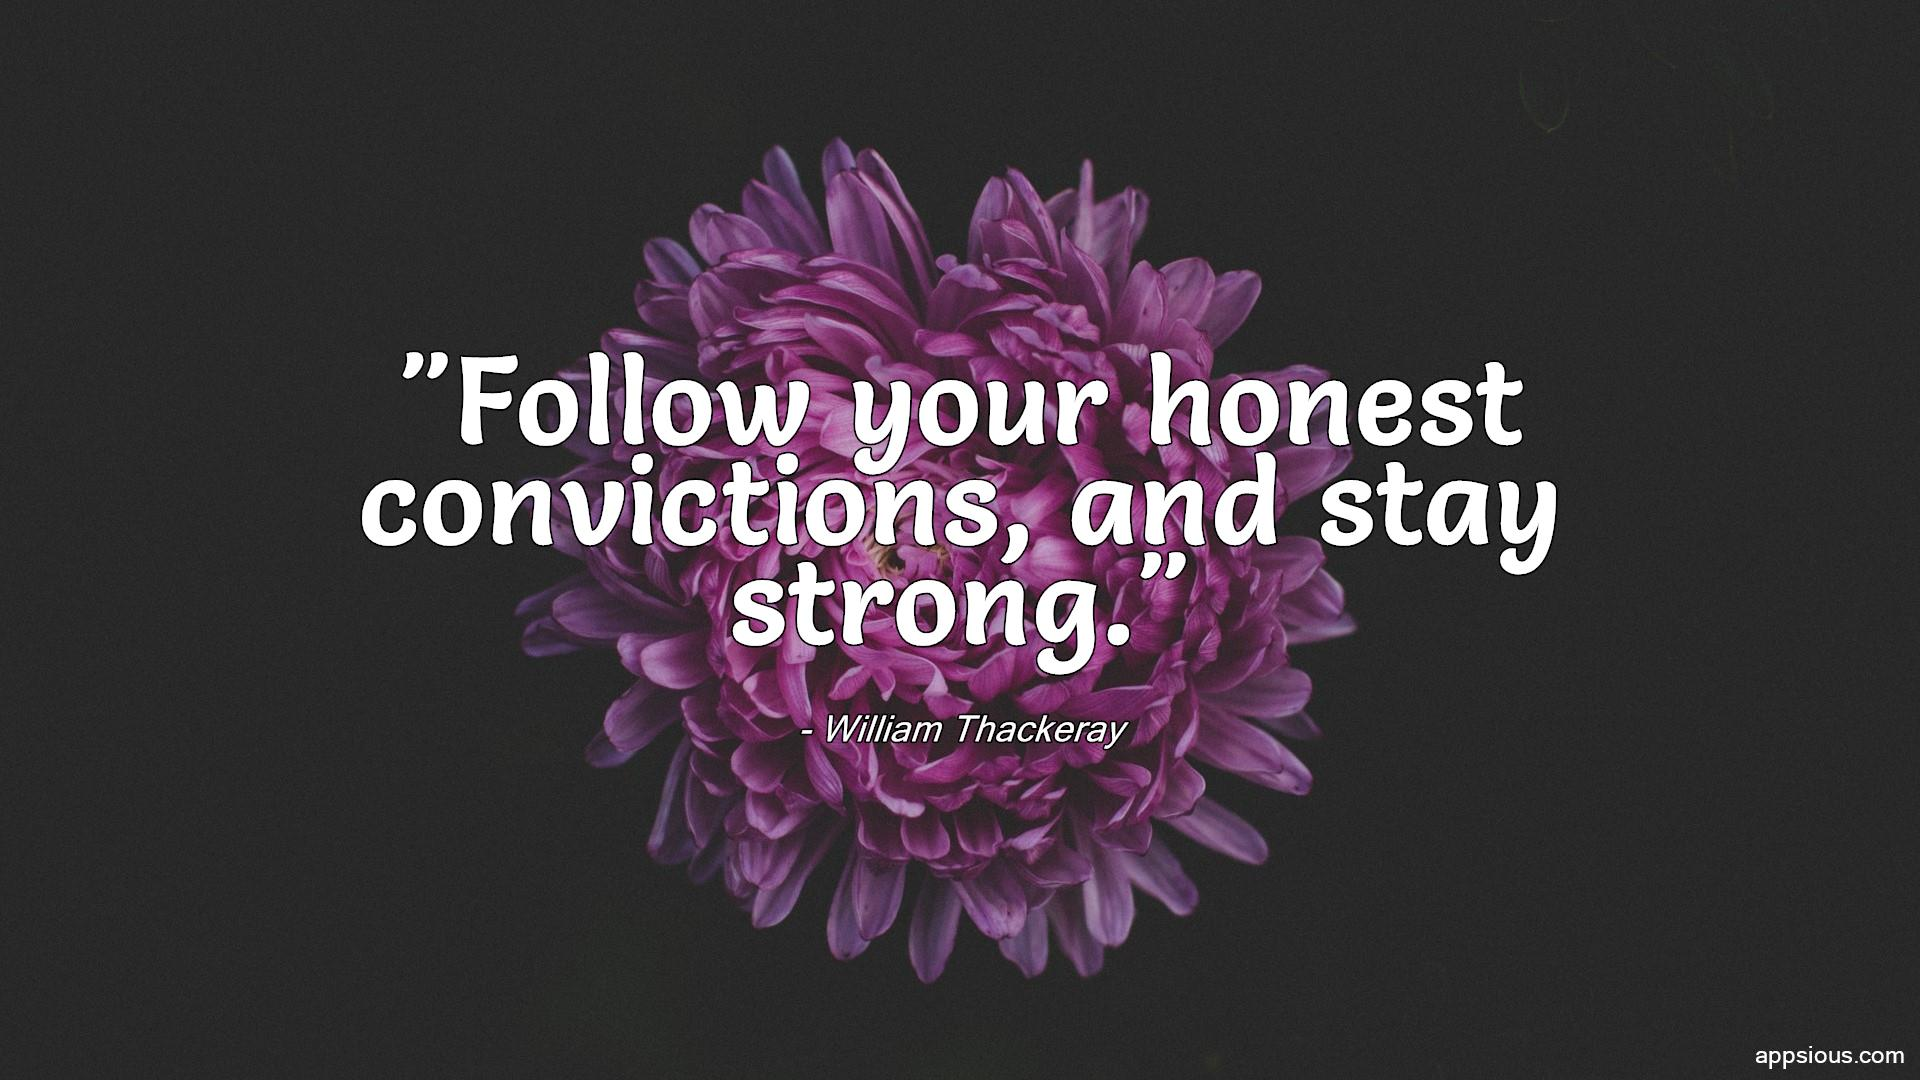 Follow your honest convictions, and stay strong.